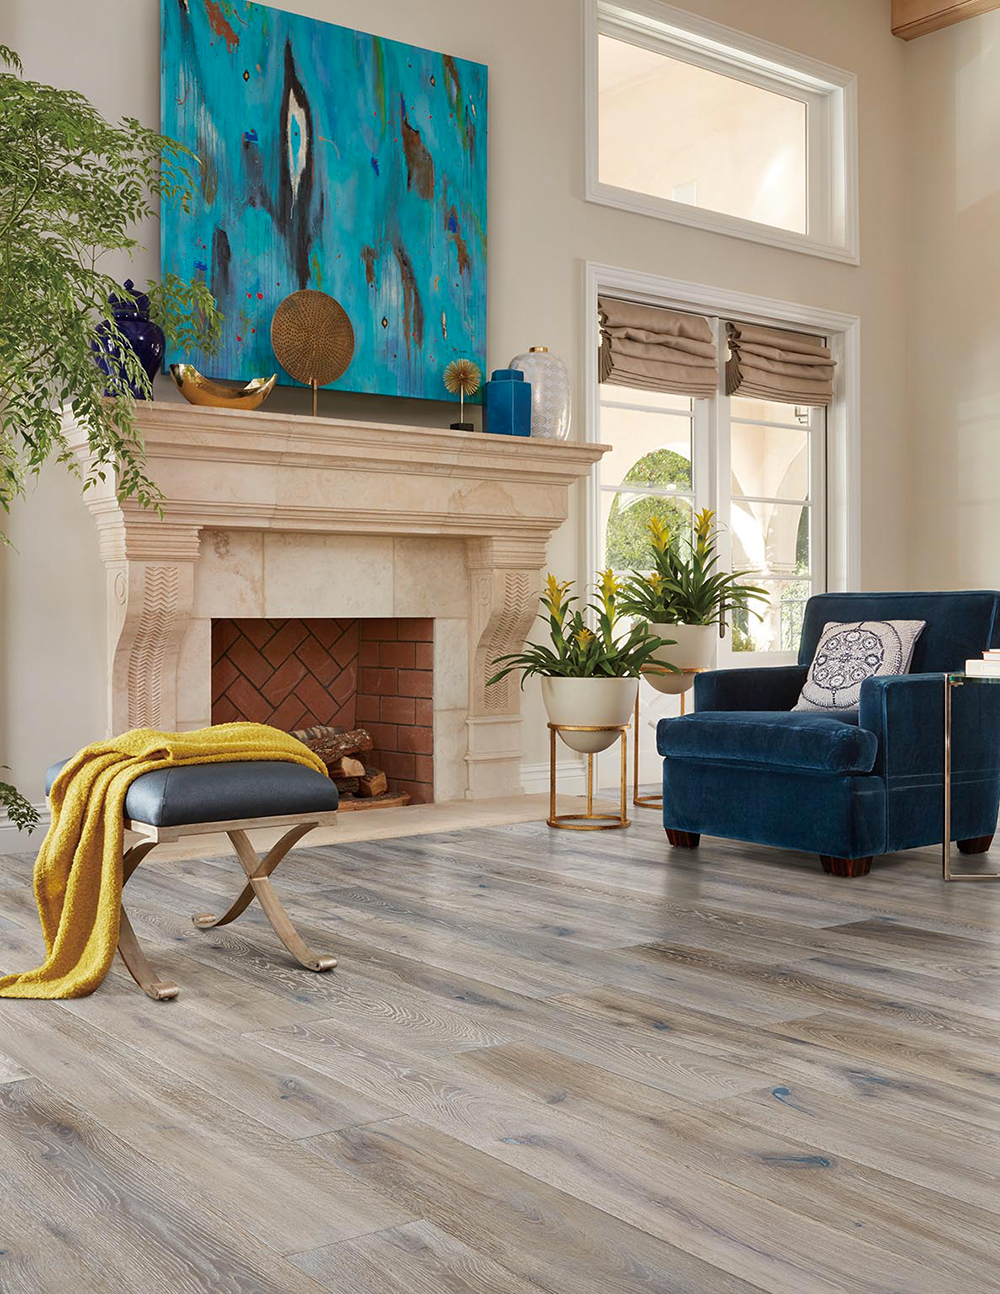 CALIFORNIA CLASSICS MONACO FRENCH OAK, MEDITERRANEAN, MCMN692, Hardwood Flooring, Laminate Floors, CA, California